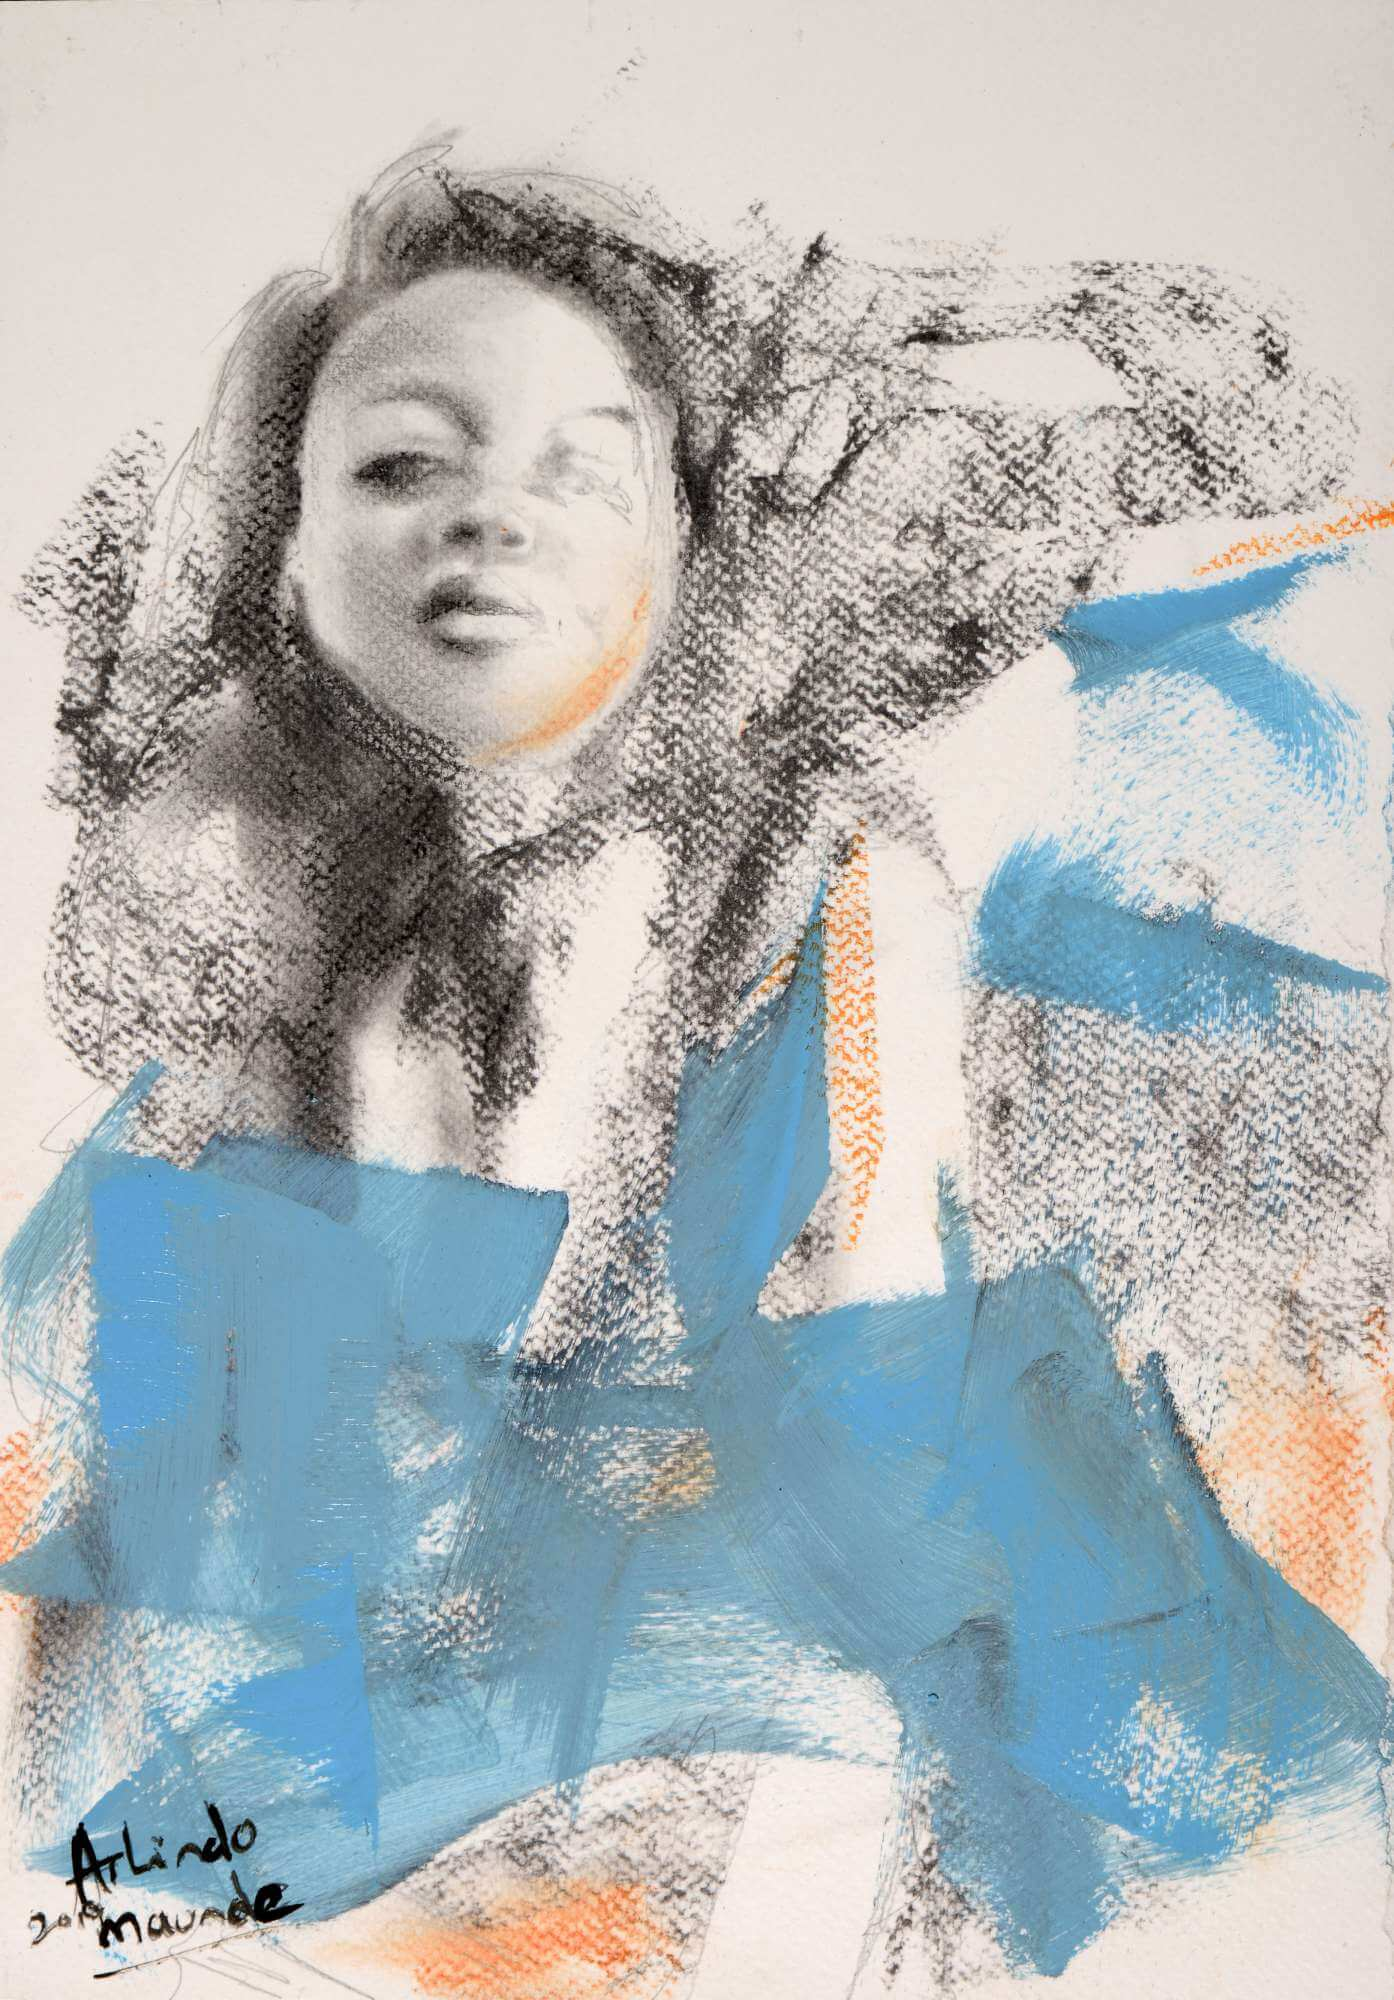 Abstract of a young woman